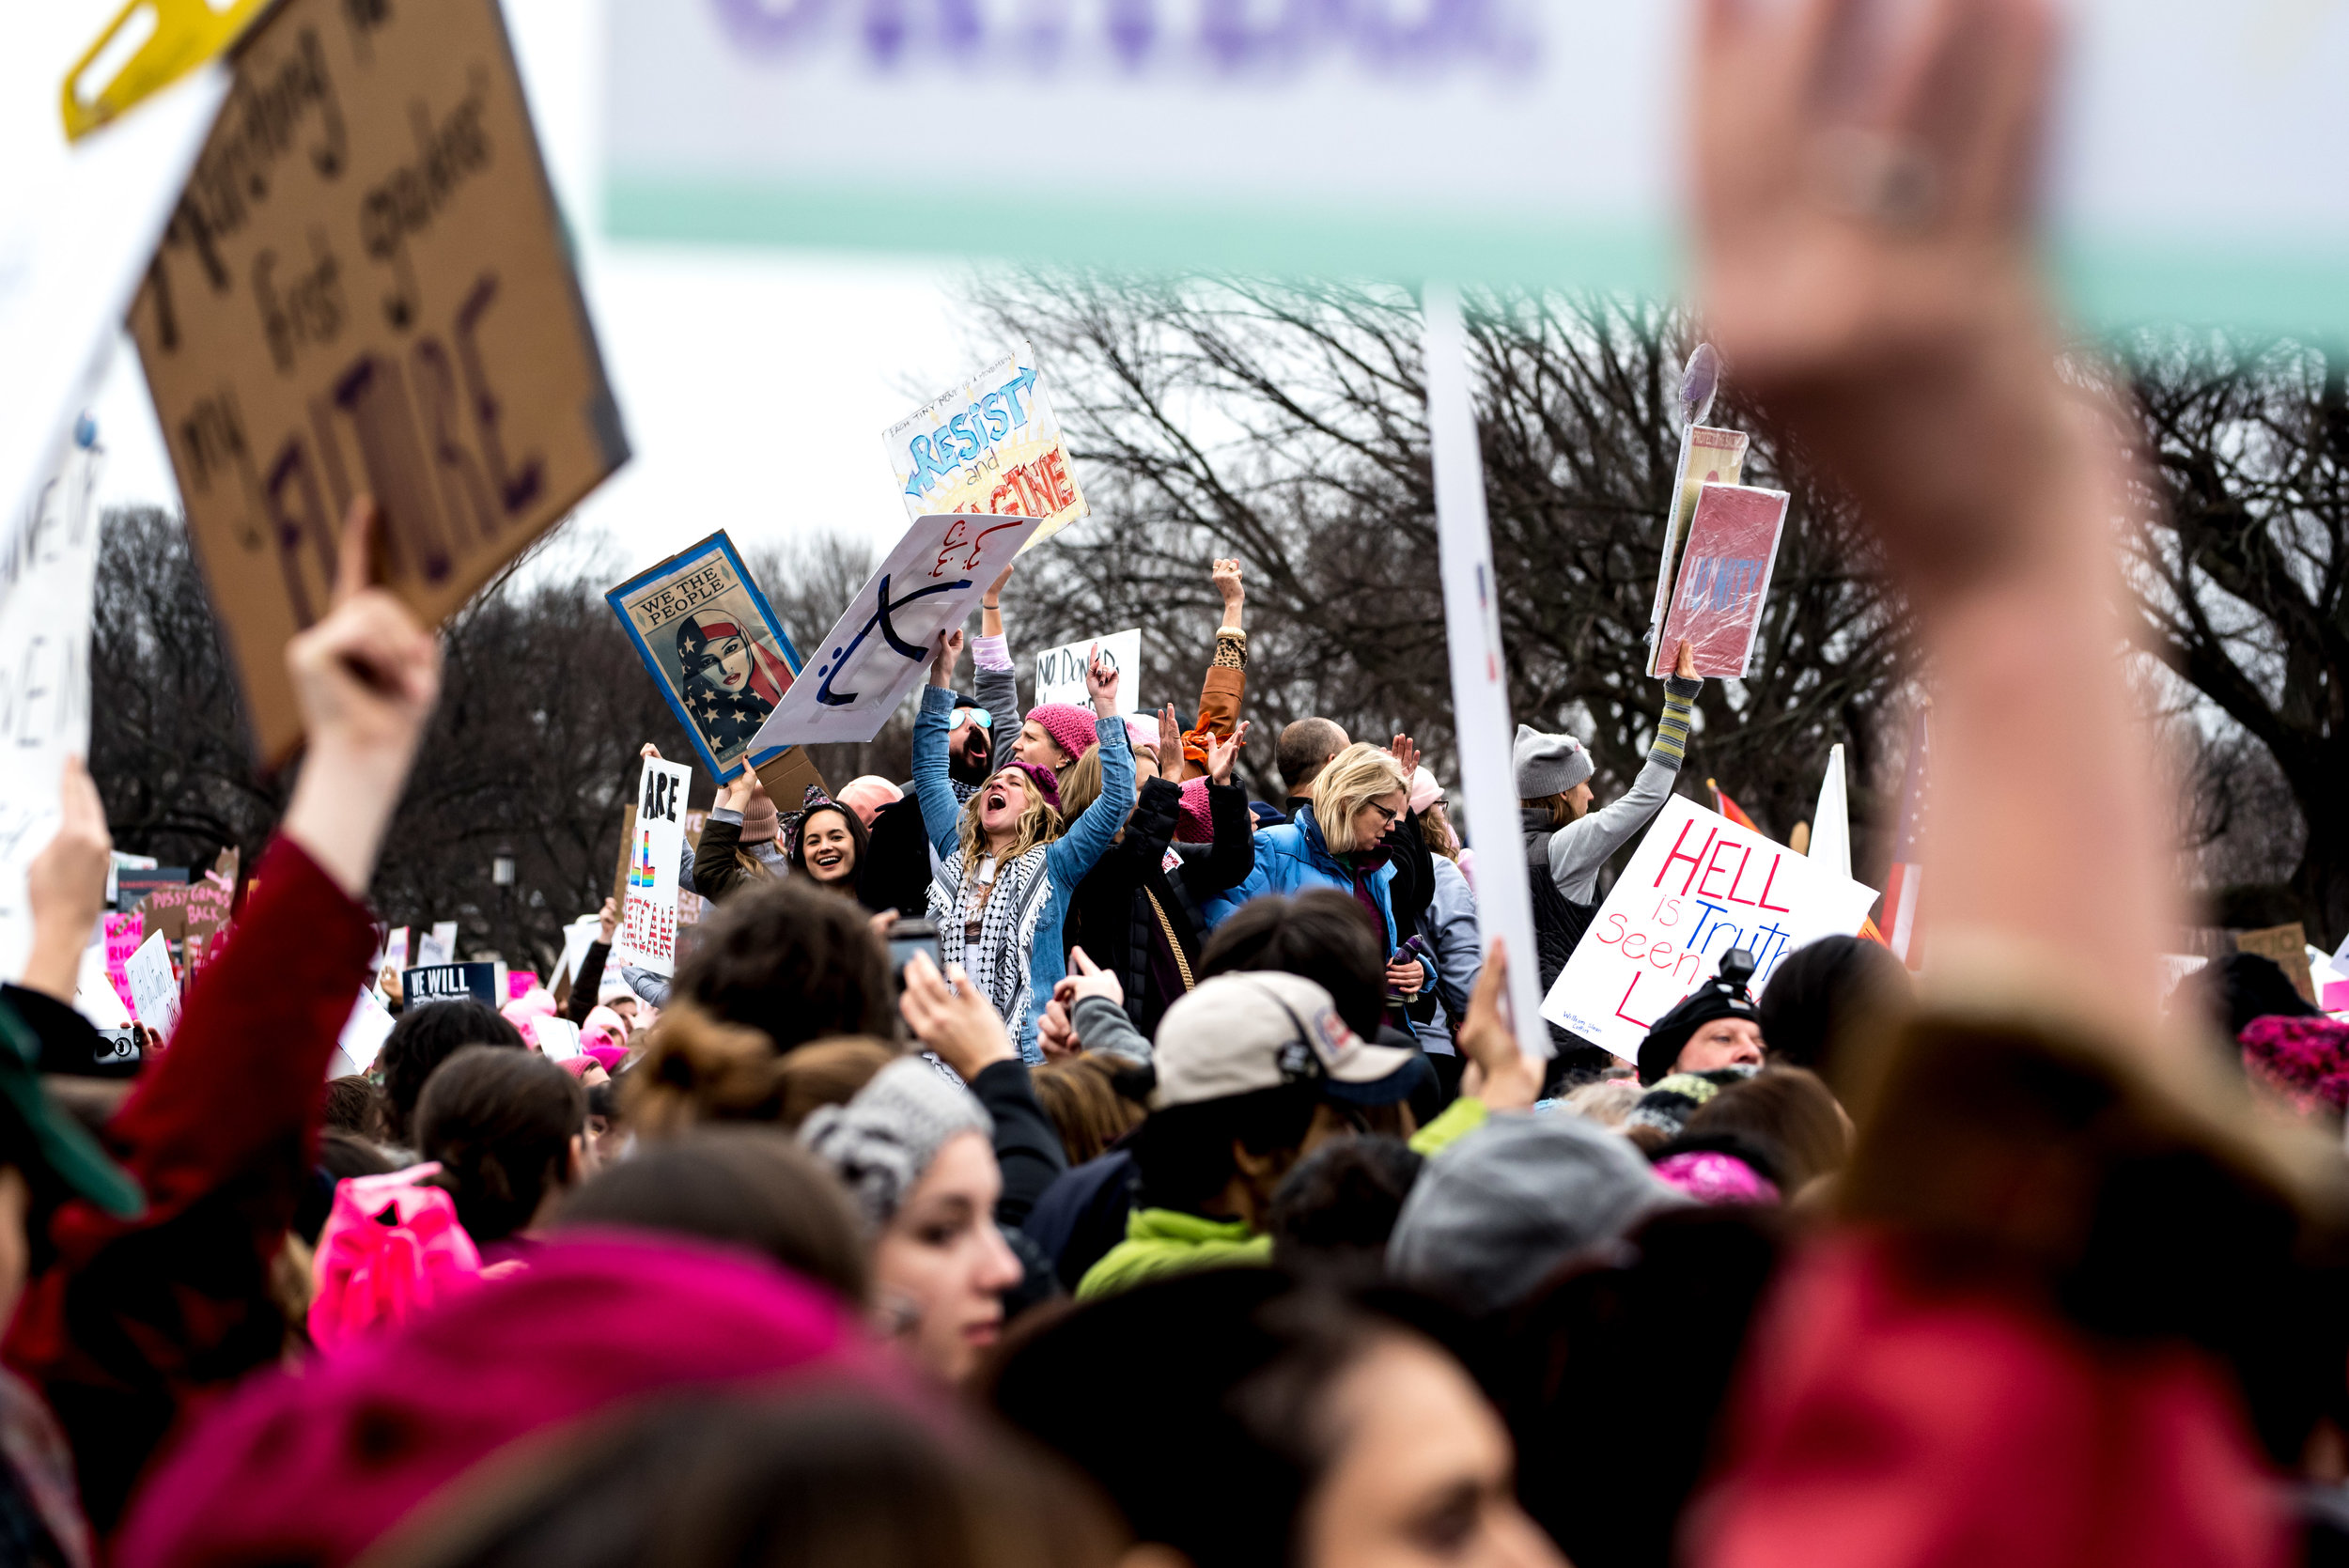 Women's-March-Photo-By-Tricia-Suriani-Ramsay-31.jpg